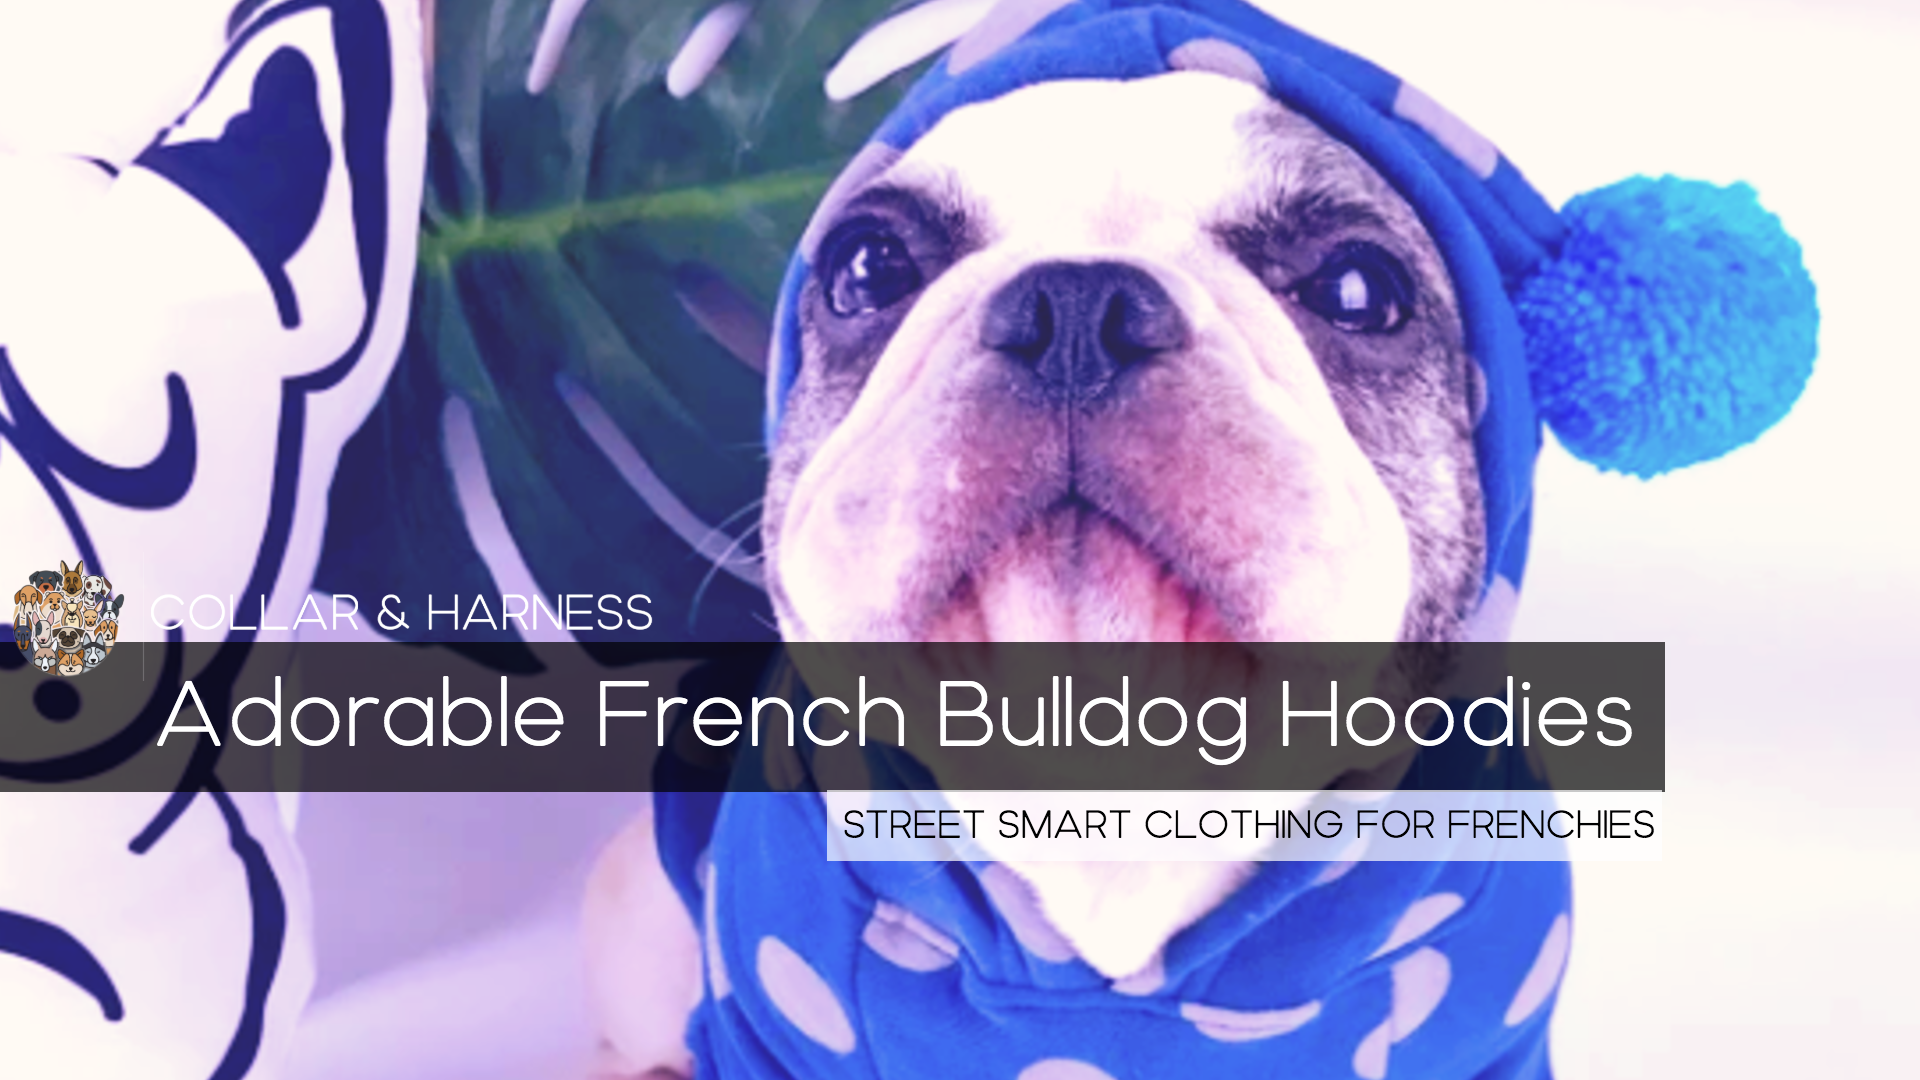 9 Adorable French Bulldog Hoodies - The Best in Style for your Frenchie